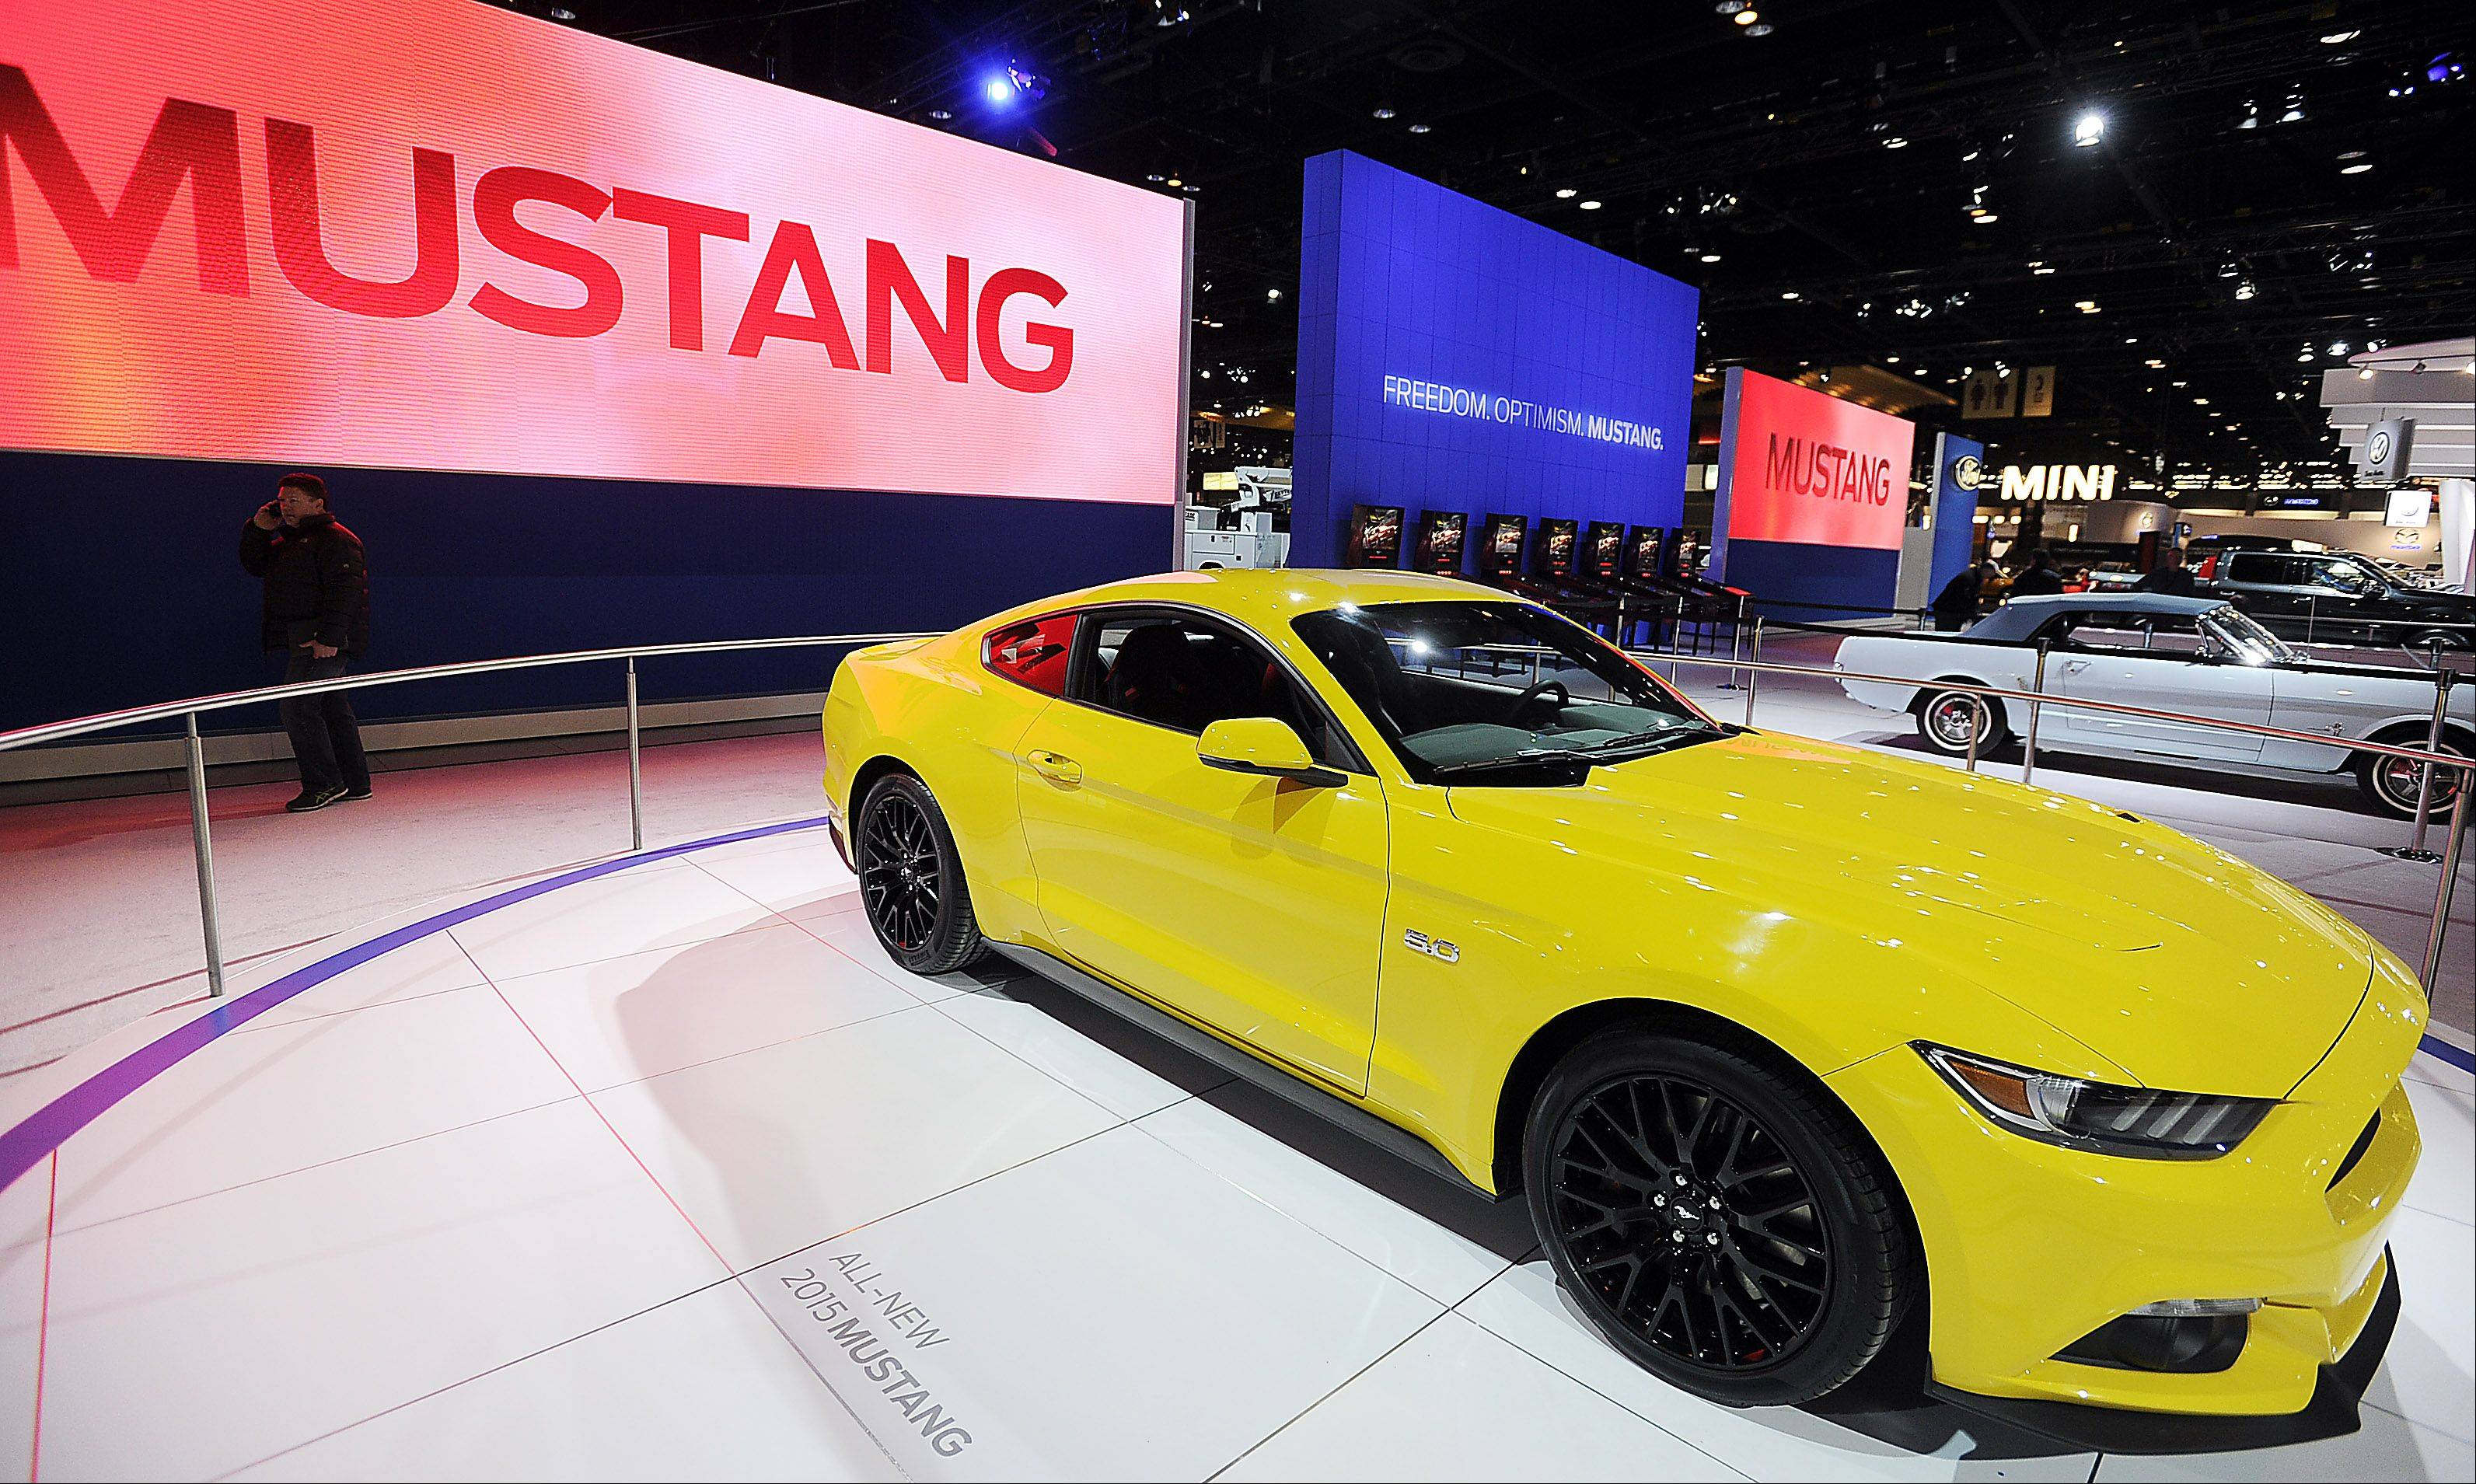 The Ford Mustang turns 50 this year. The 2015 Mustang at the 2014 Chicago Auto Show has been given a next generation makeover.